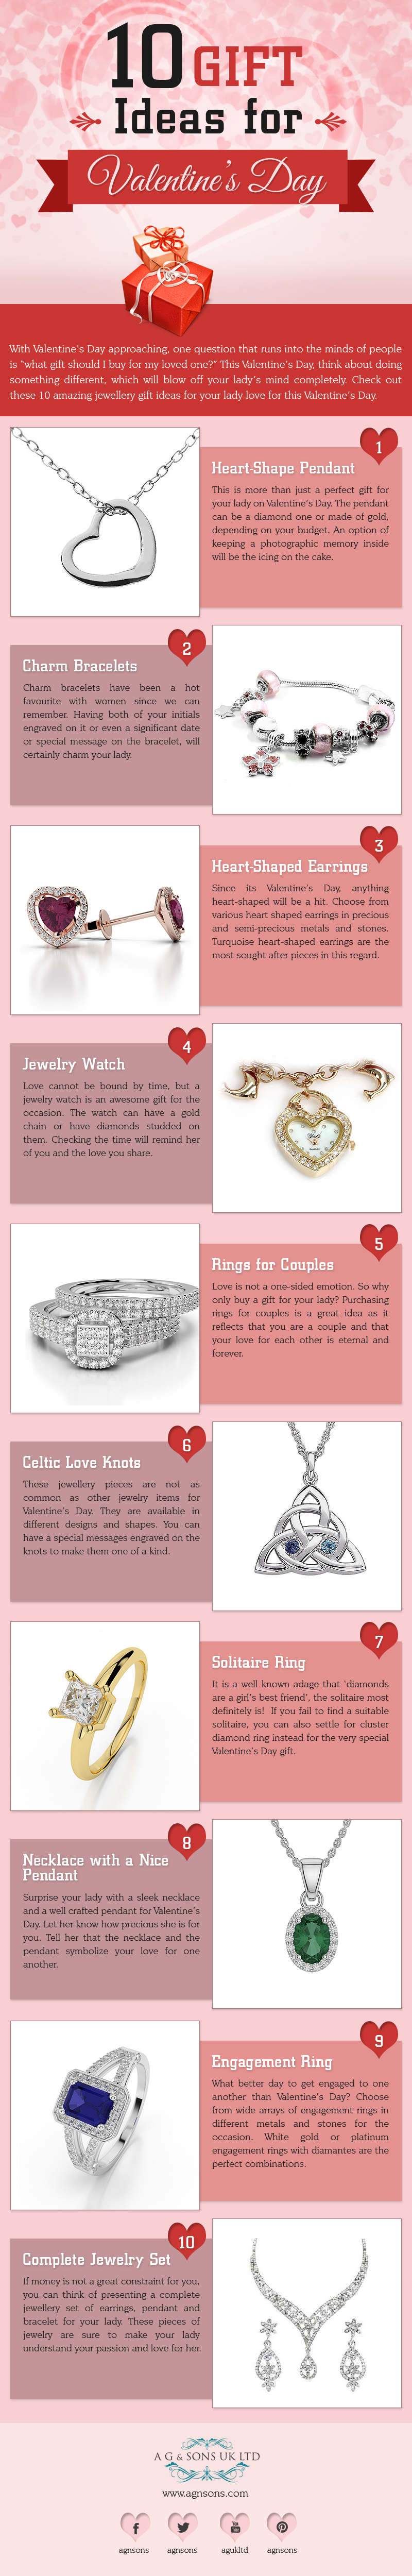 Gift Ideas for Valentine%27s Day